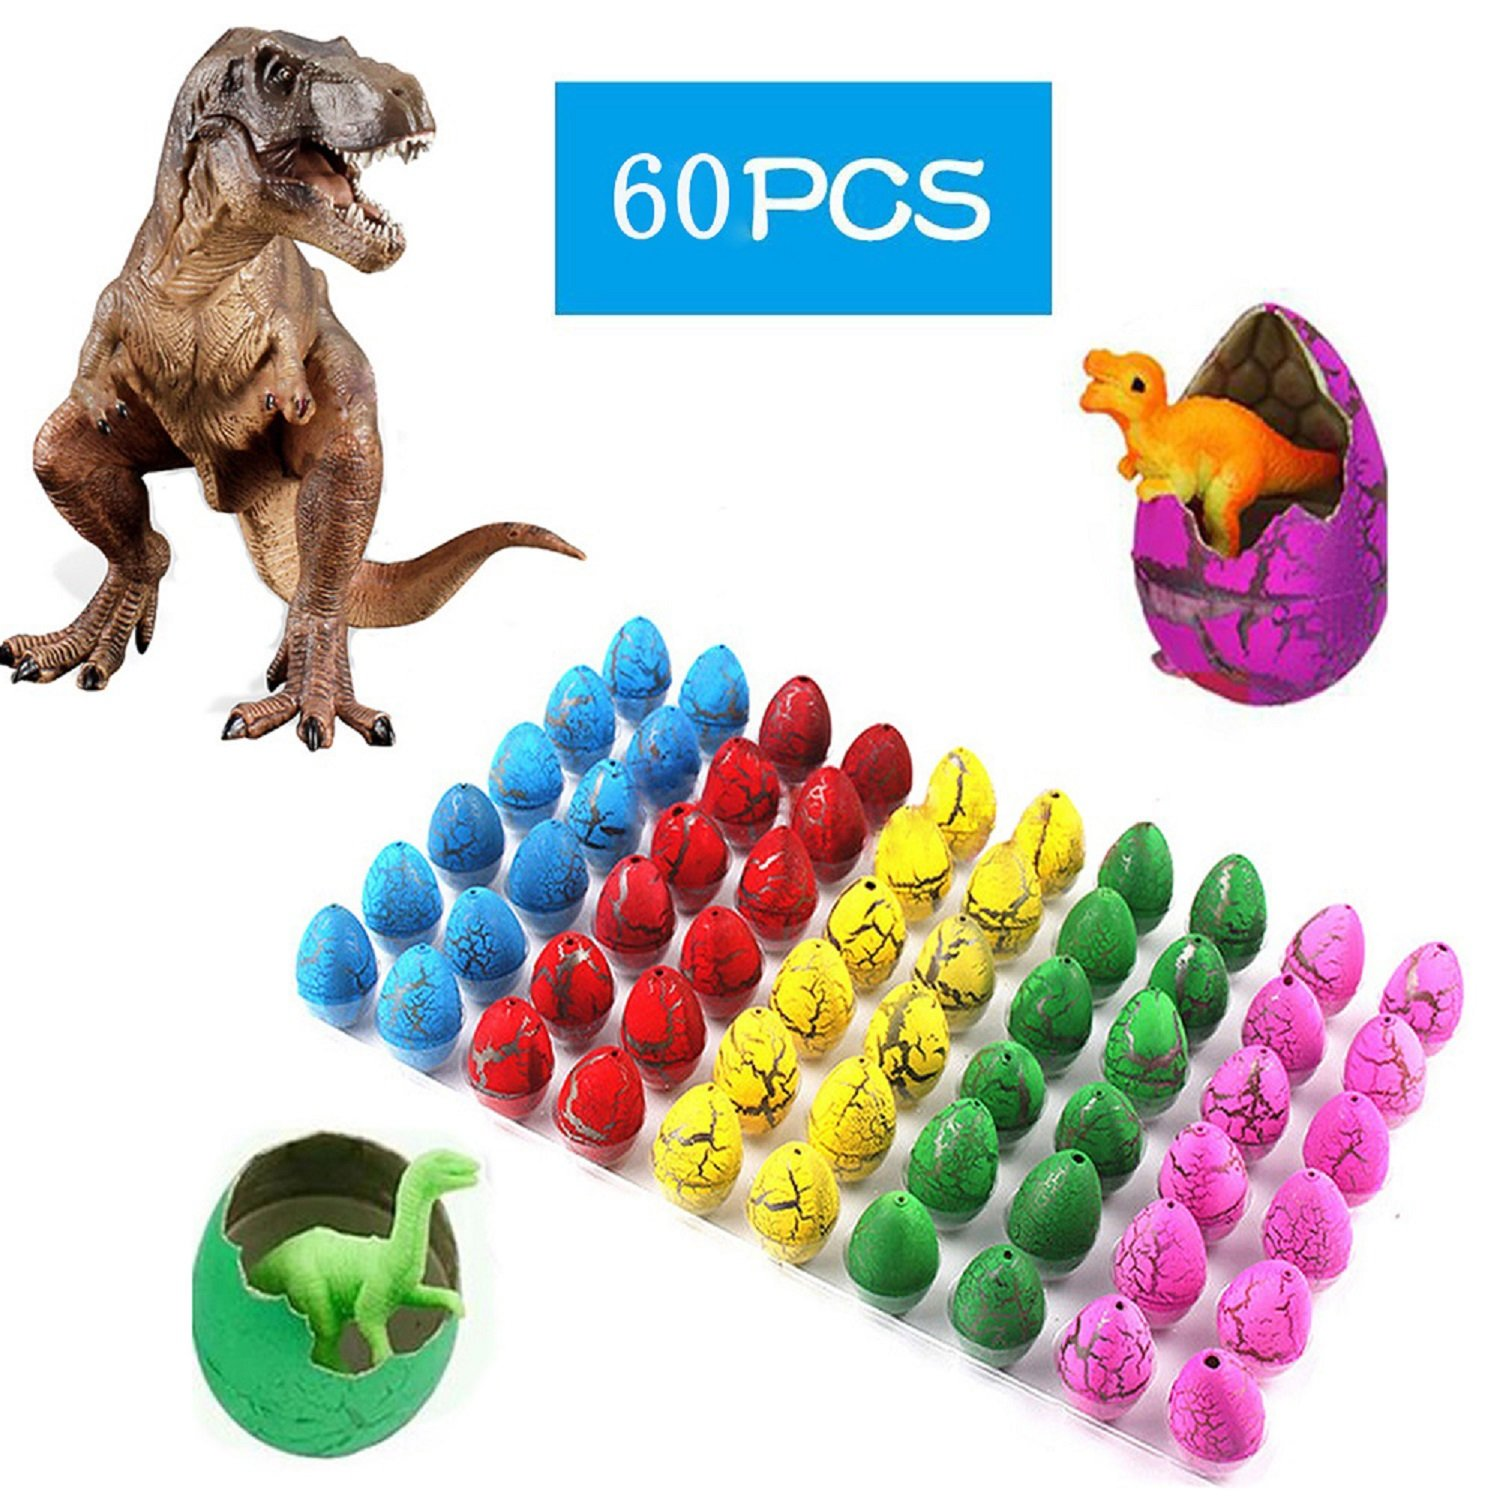 60 Pcs Novelty Hatching Dinosaur Toys , Hatch and Grow Easter Dinosaur Eggs that Hatch in Water for Kids Party Supplies by Yanxi7